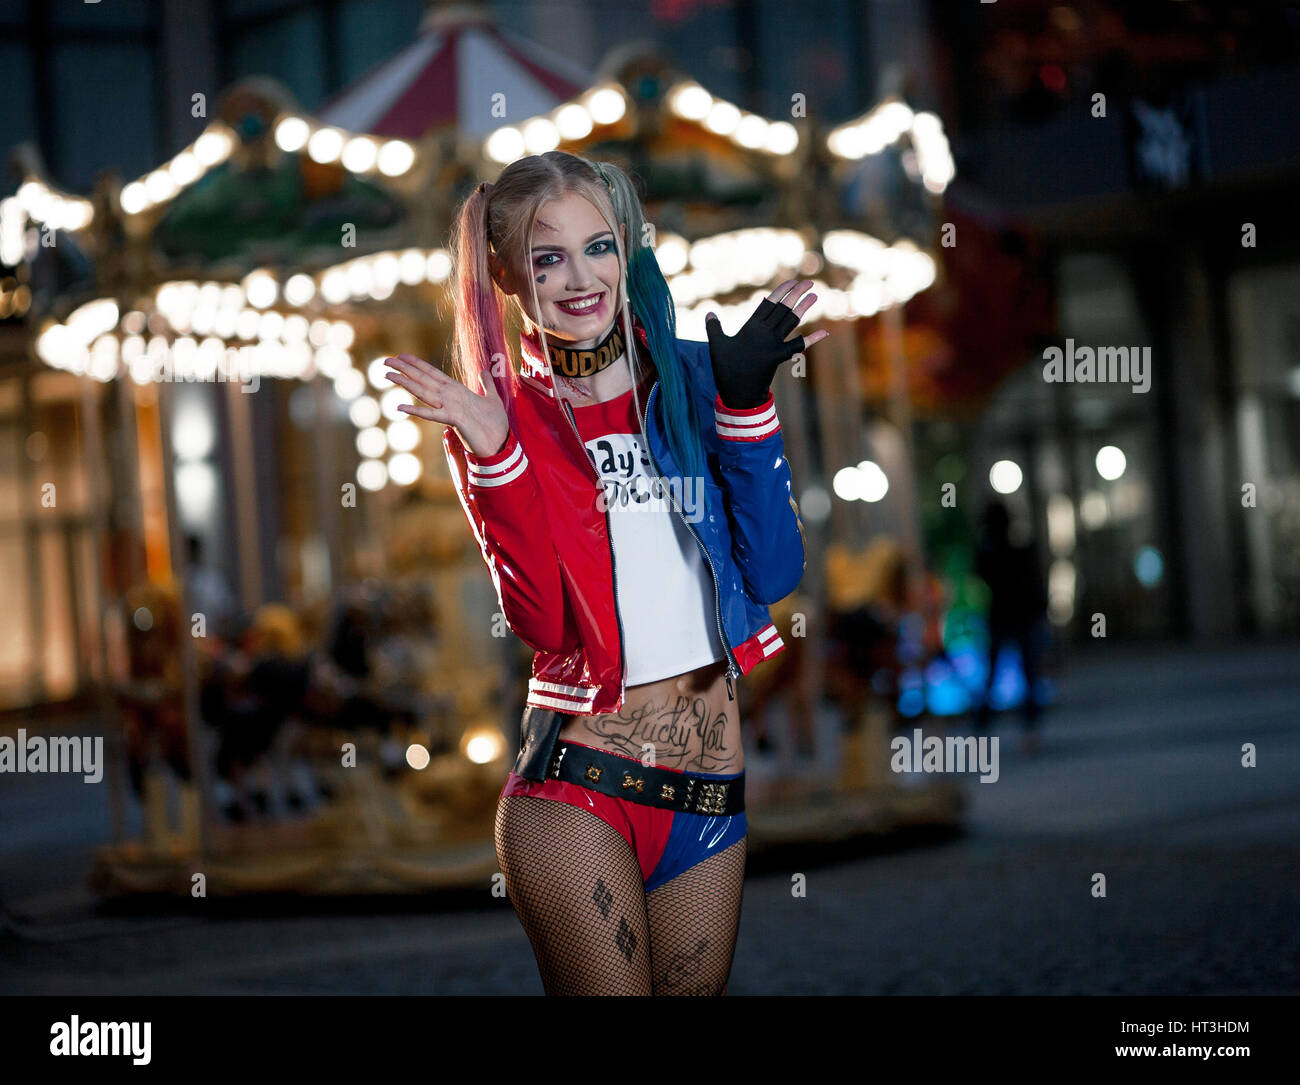 Smiling girl in costume Harley Quinn on background of night city lights. Cosplay - Stock Image